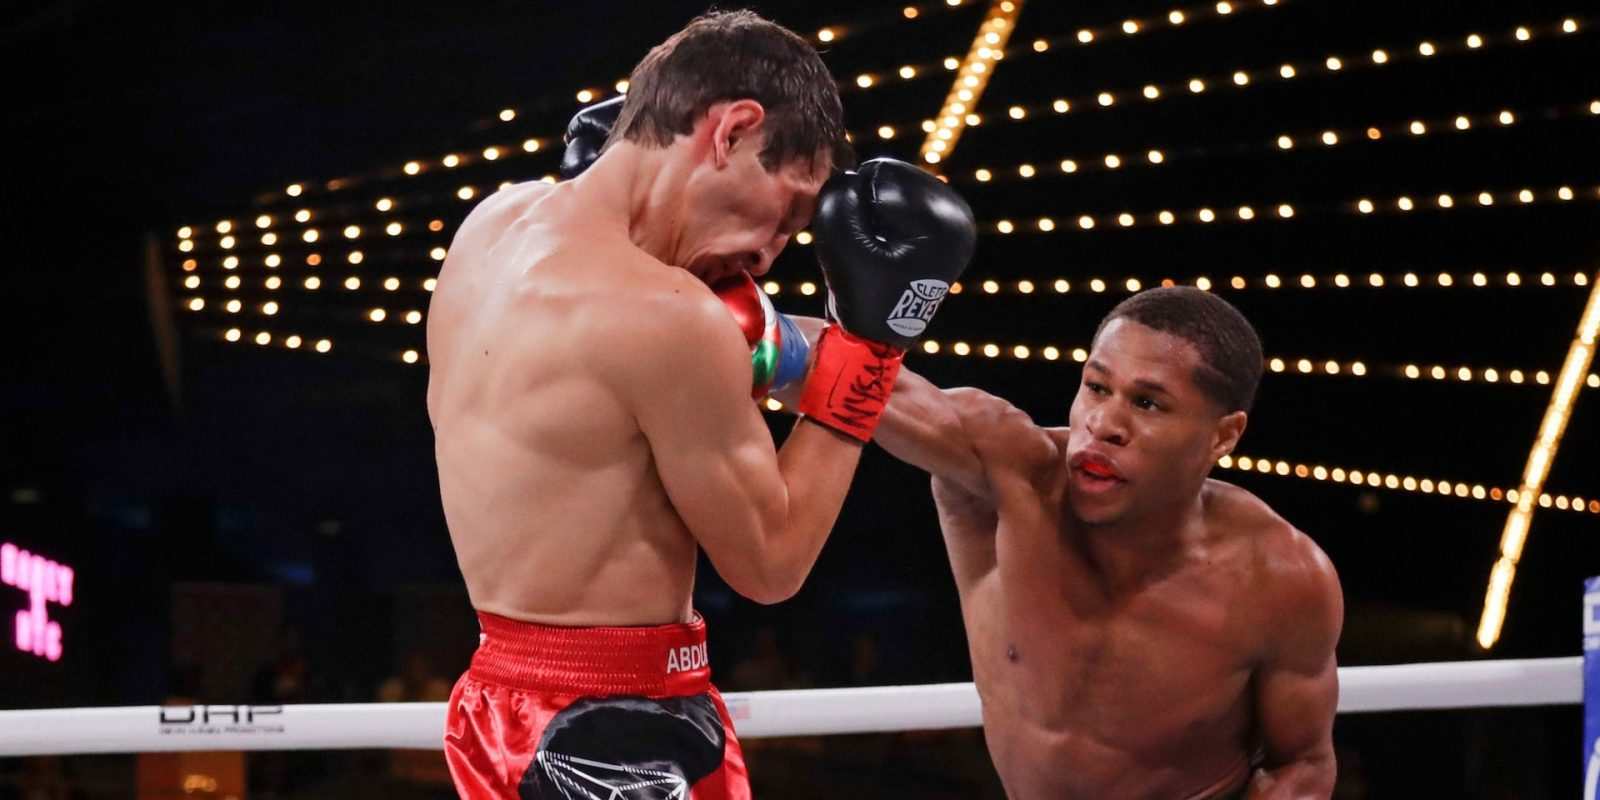 A 20-year-old American boxer scored another thumping win, escalating comparisons to a young Floyd Mayweather